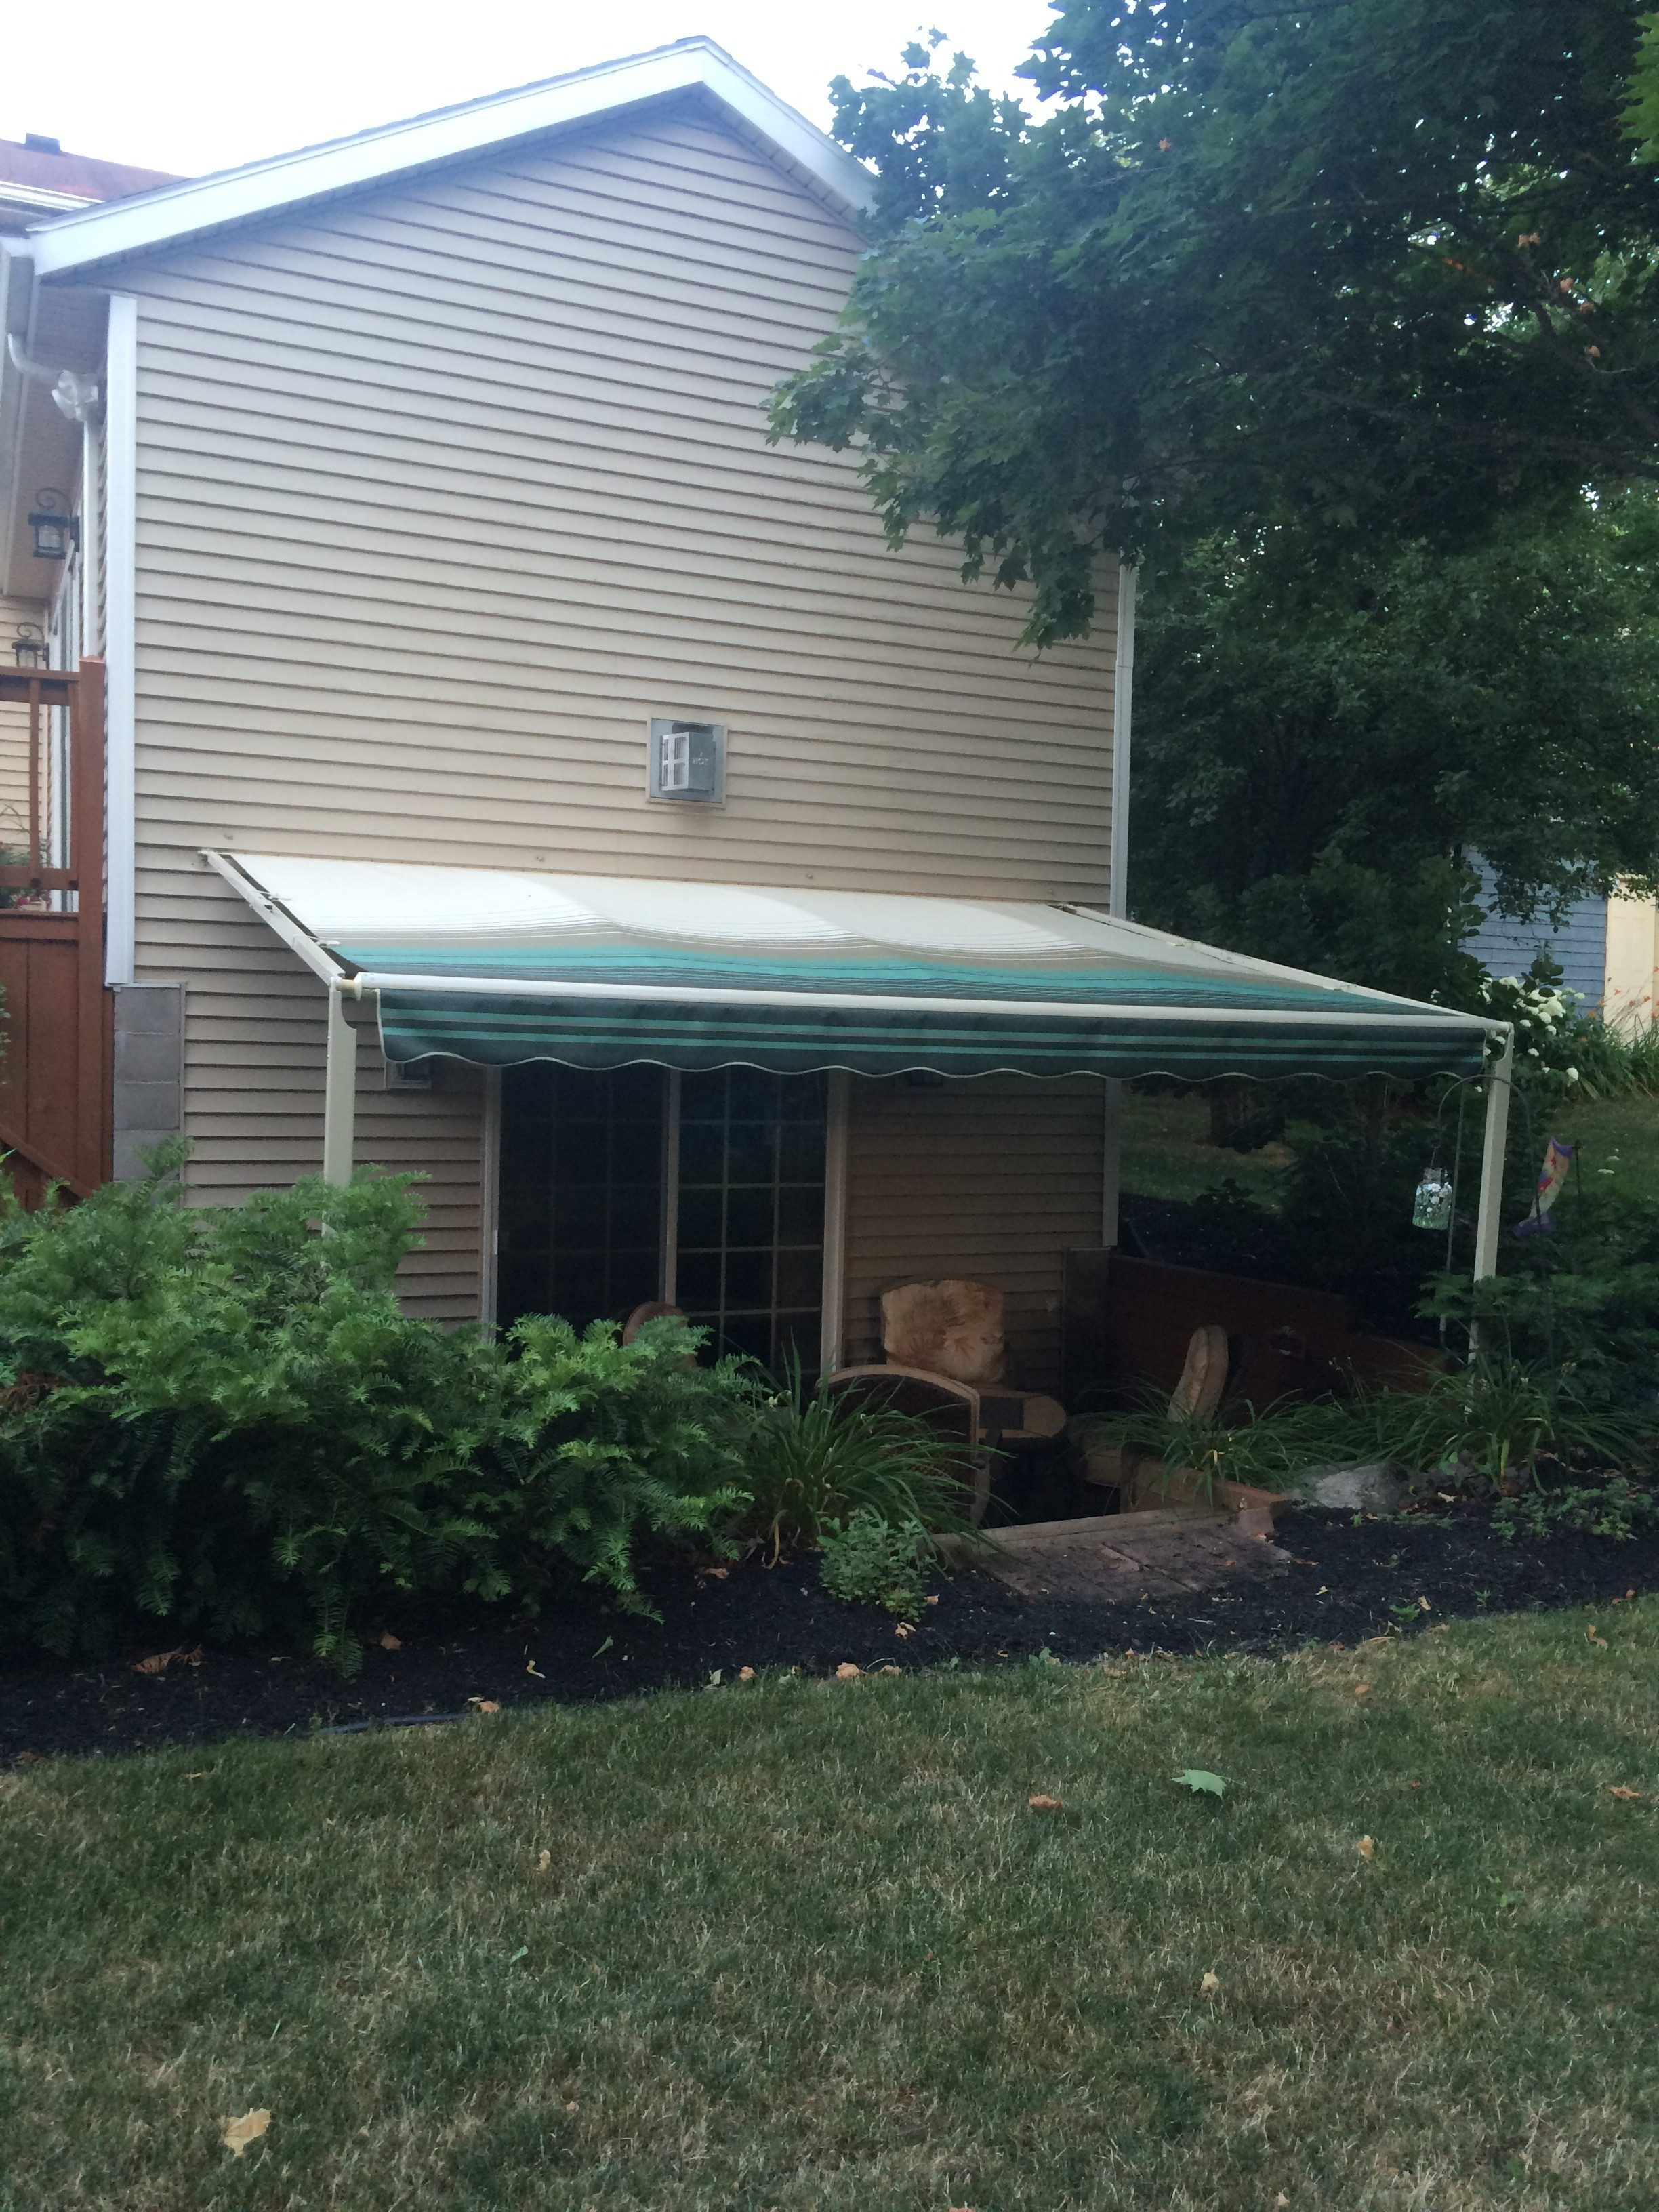 Top 372 Reviews and Complaints about SunSetter Awnings ...